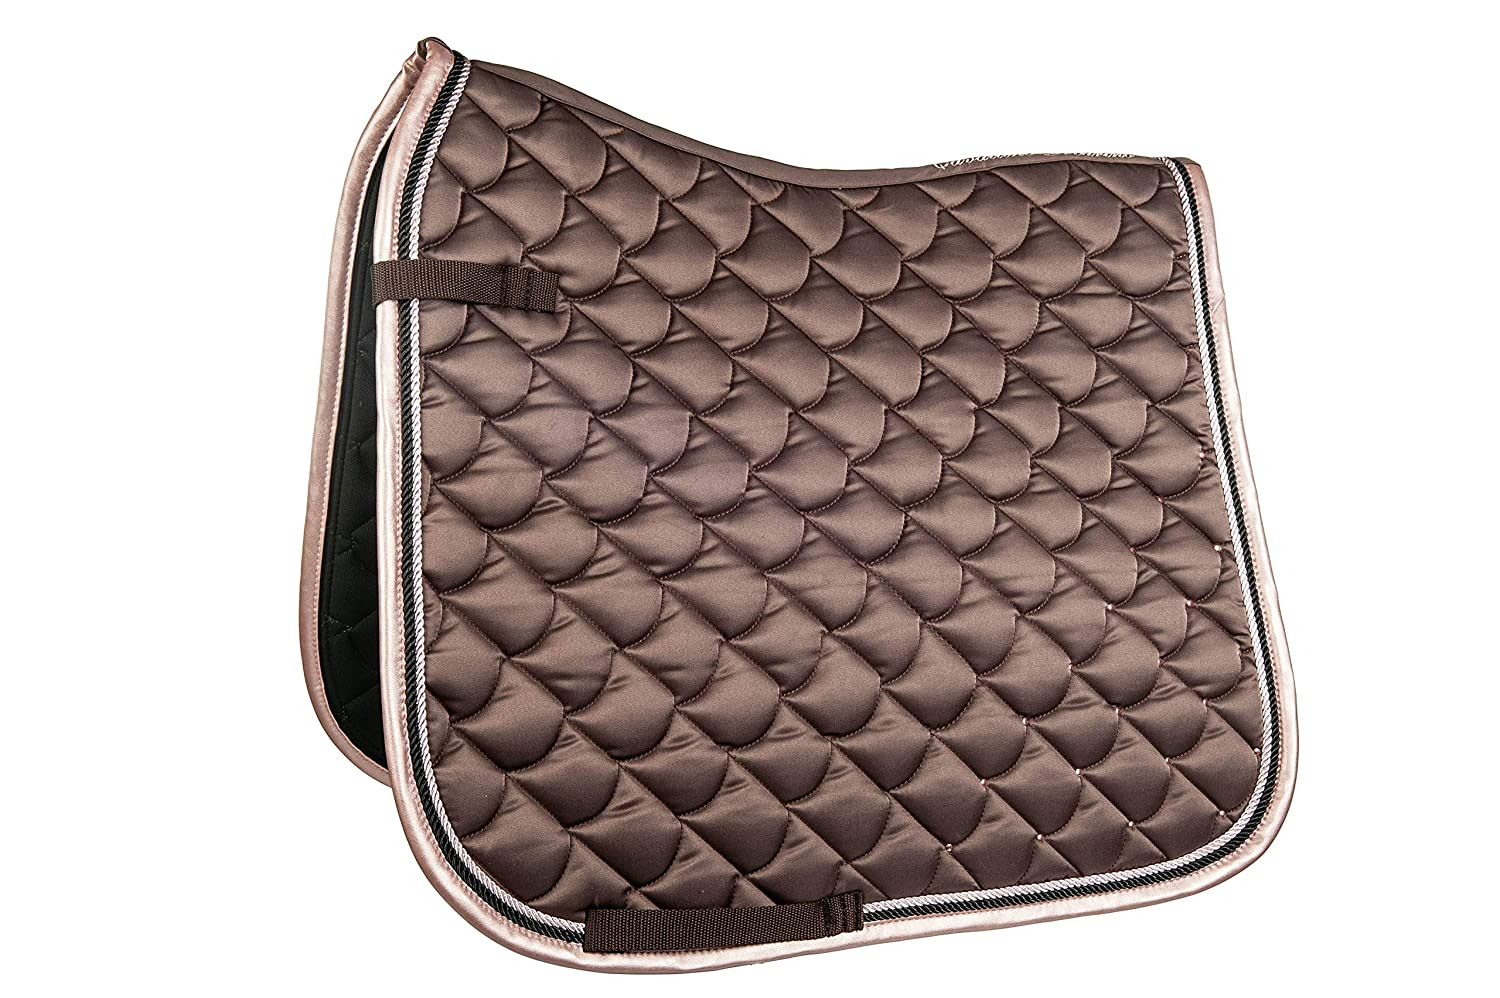 Hkm Hkm 4057052043925 Saddle Cloth -Copper Kiss-4000 Mokkaponyviels.